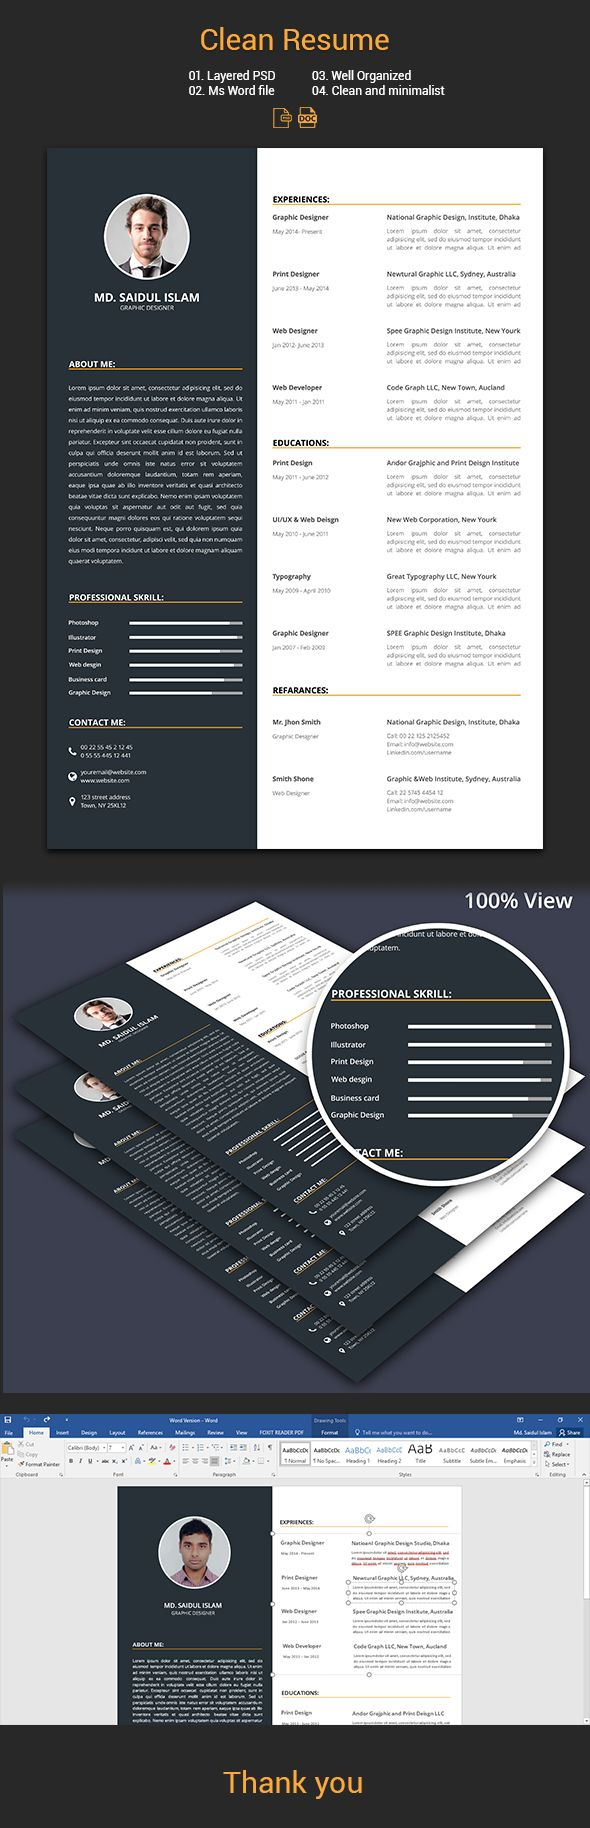 Functional Resume Template Microsoft%0A Get the best  resume  cv for your own business and  job interview